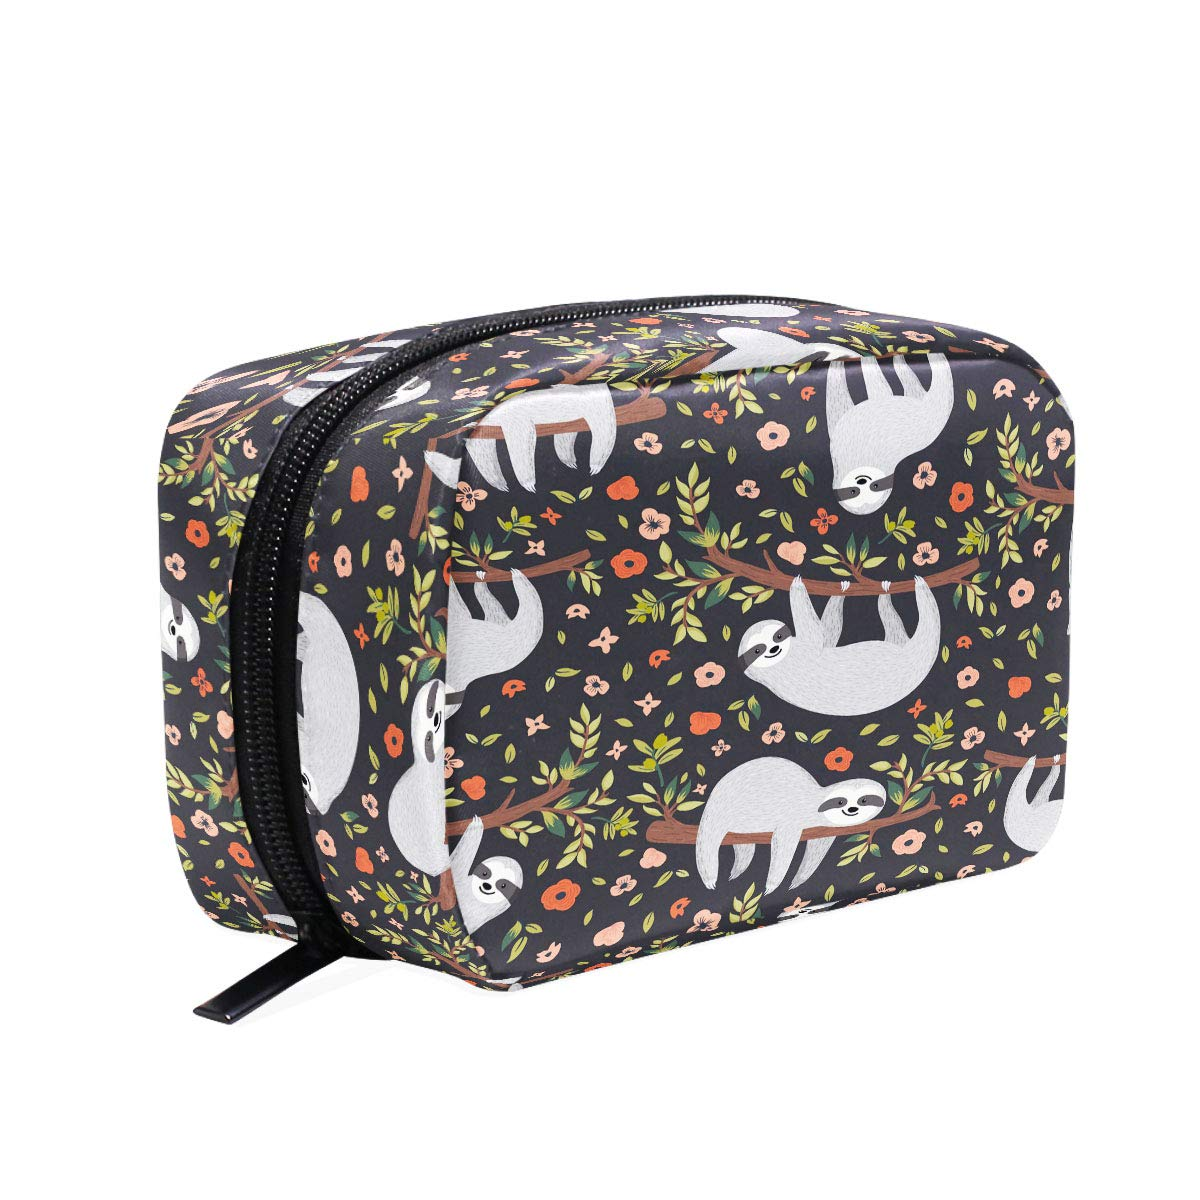 Baby Sloth Flowers Makeup Bag Cosmetic Bag Toiletry Travel Bag Case for Women, Cartoon Animal Portable Pencil Pen Organizer Storage Pouch Bags Box